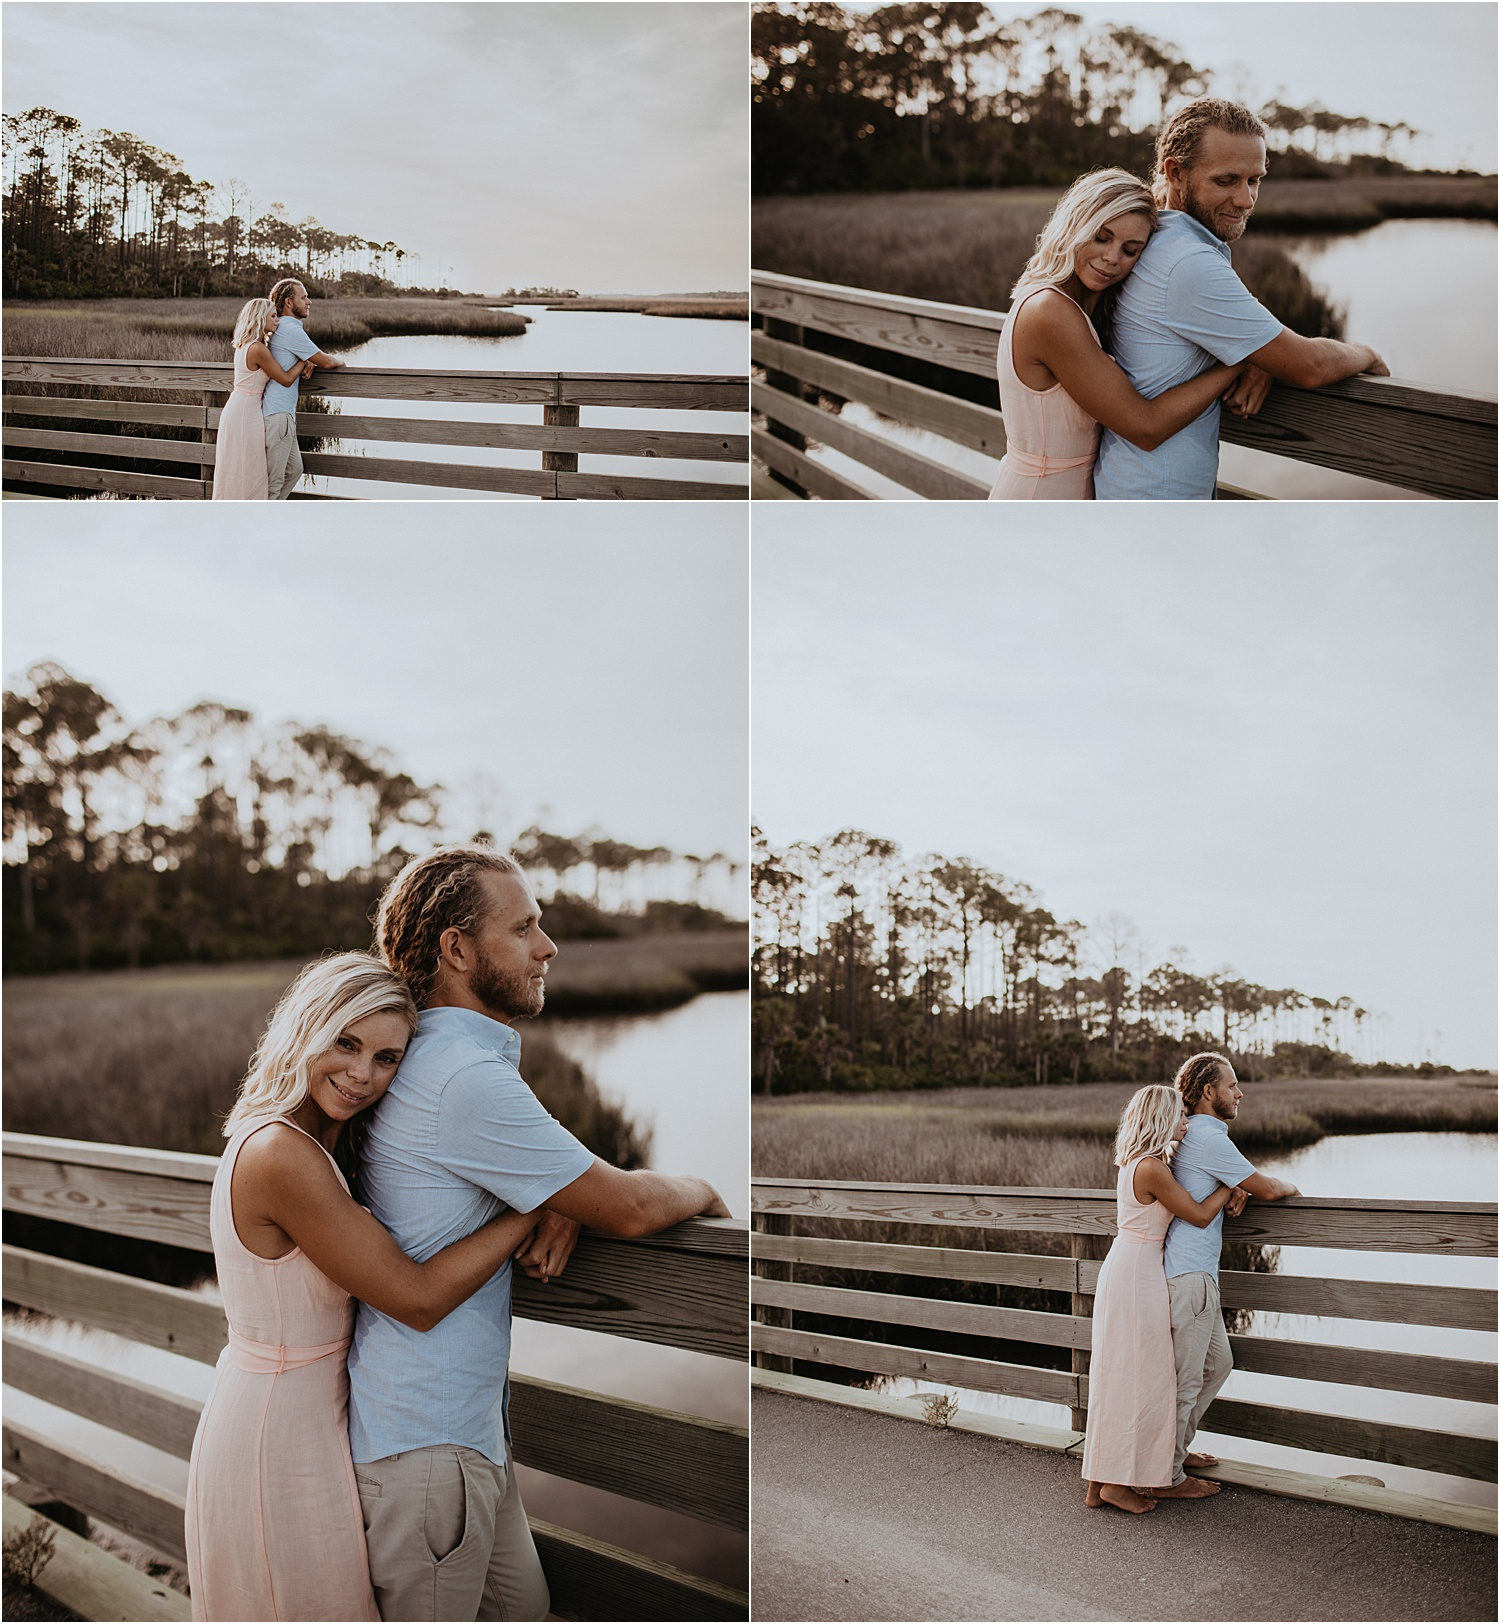 dutton-island-preserve-engagement-session-jacksonville-florida_0781.jpg